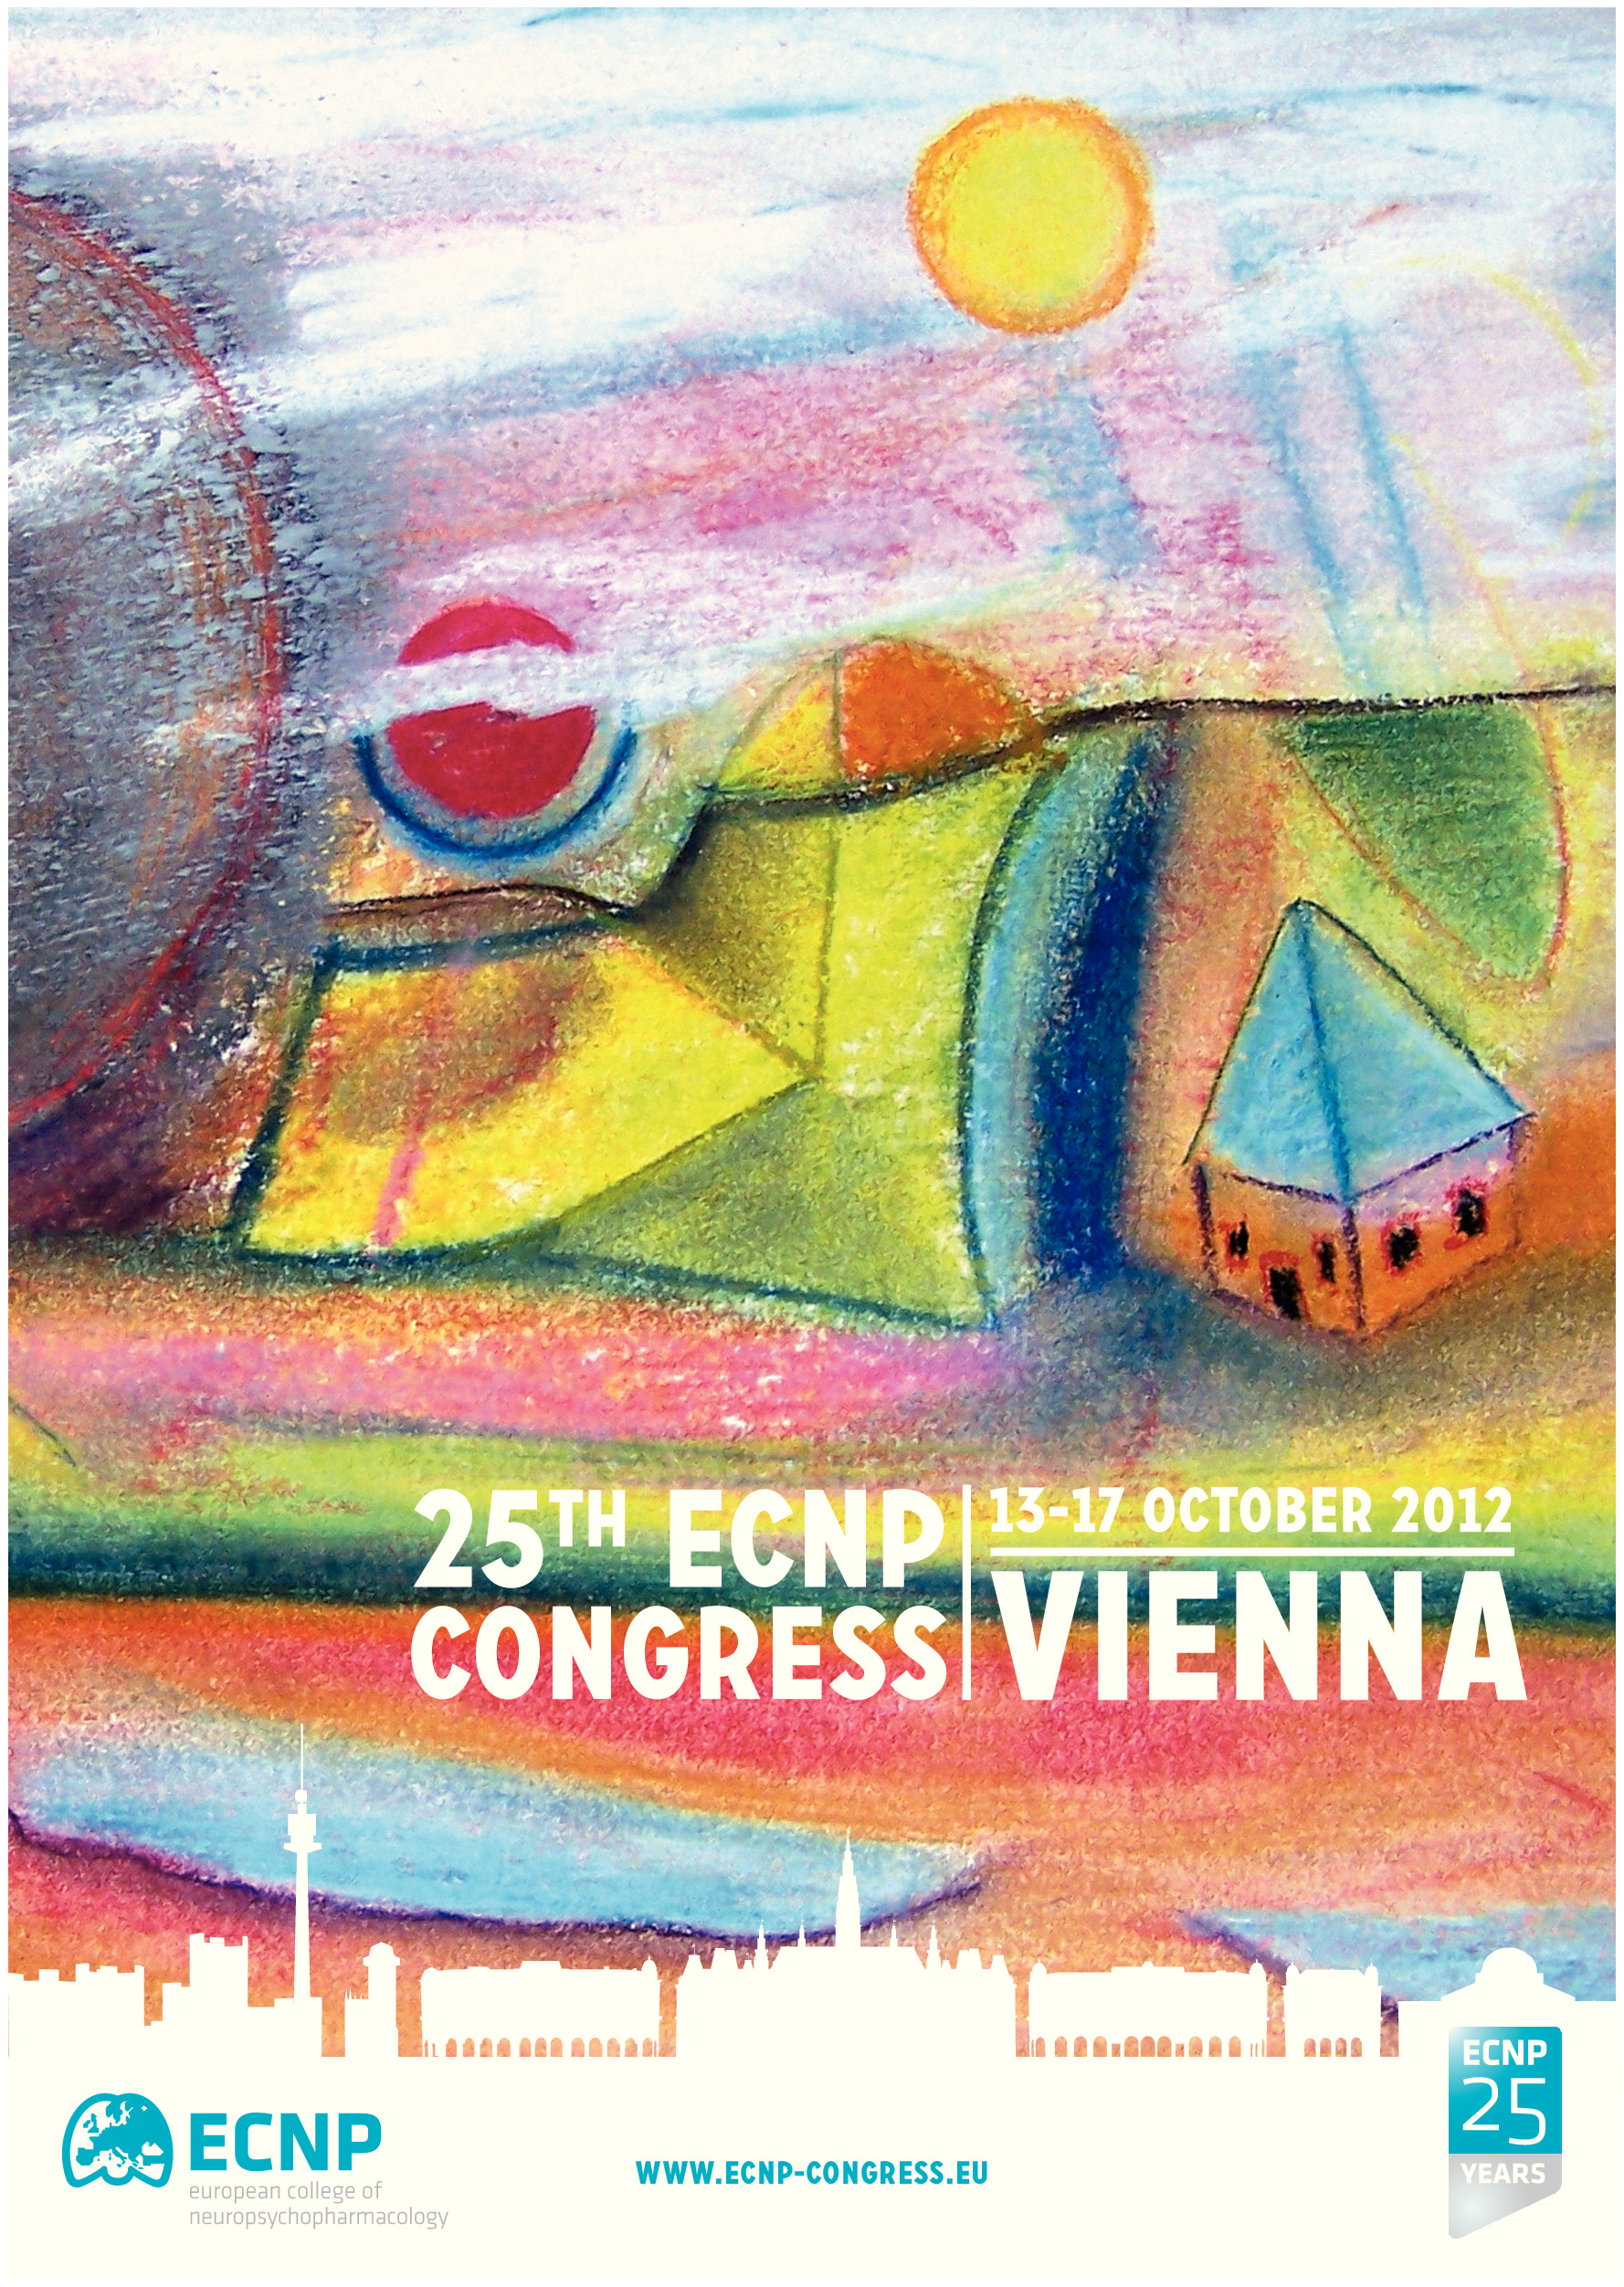 25th ECNP Congress Vienna 2012